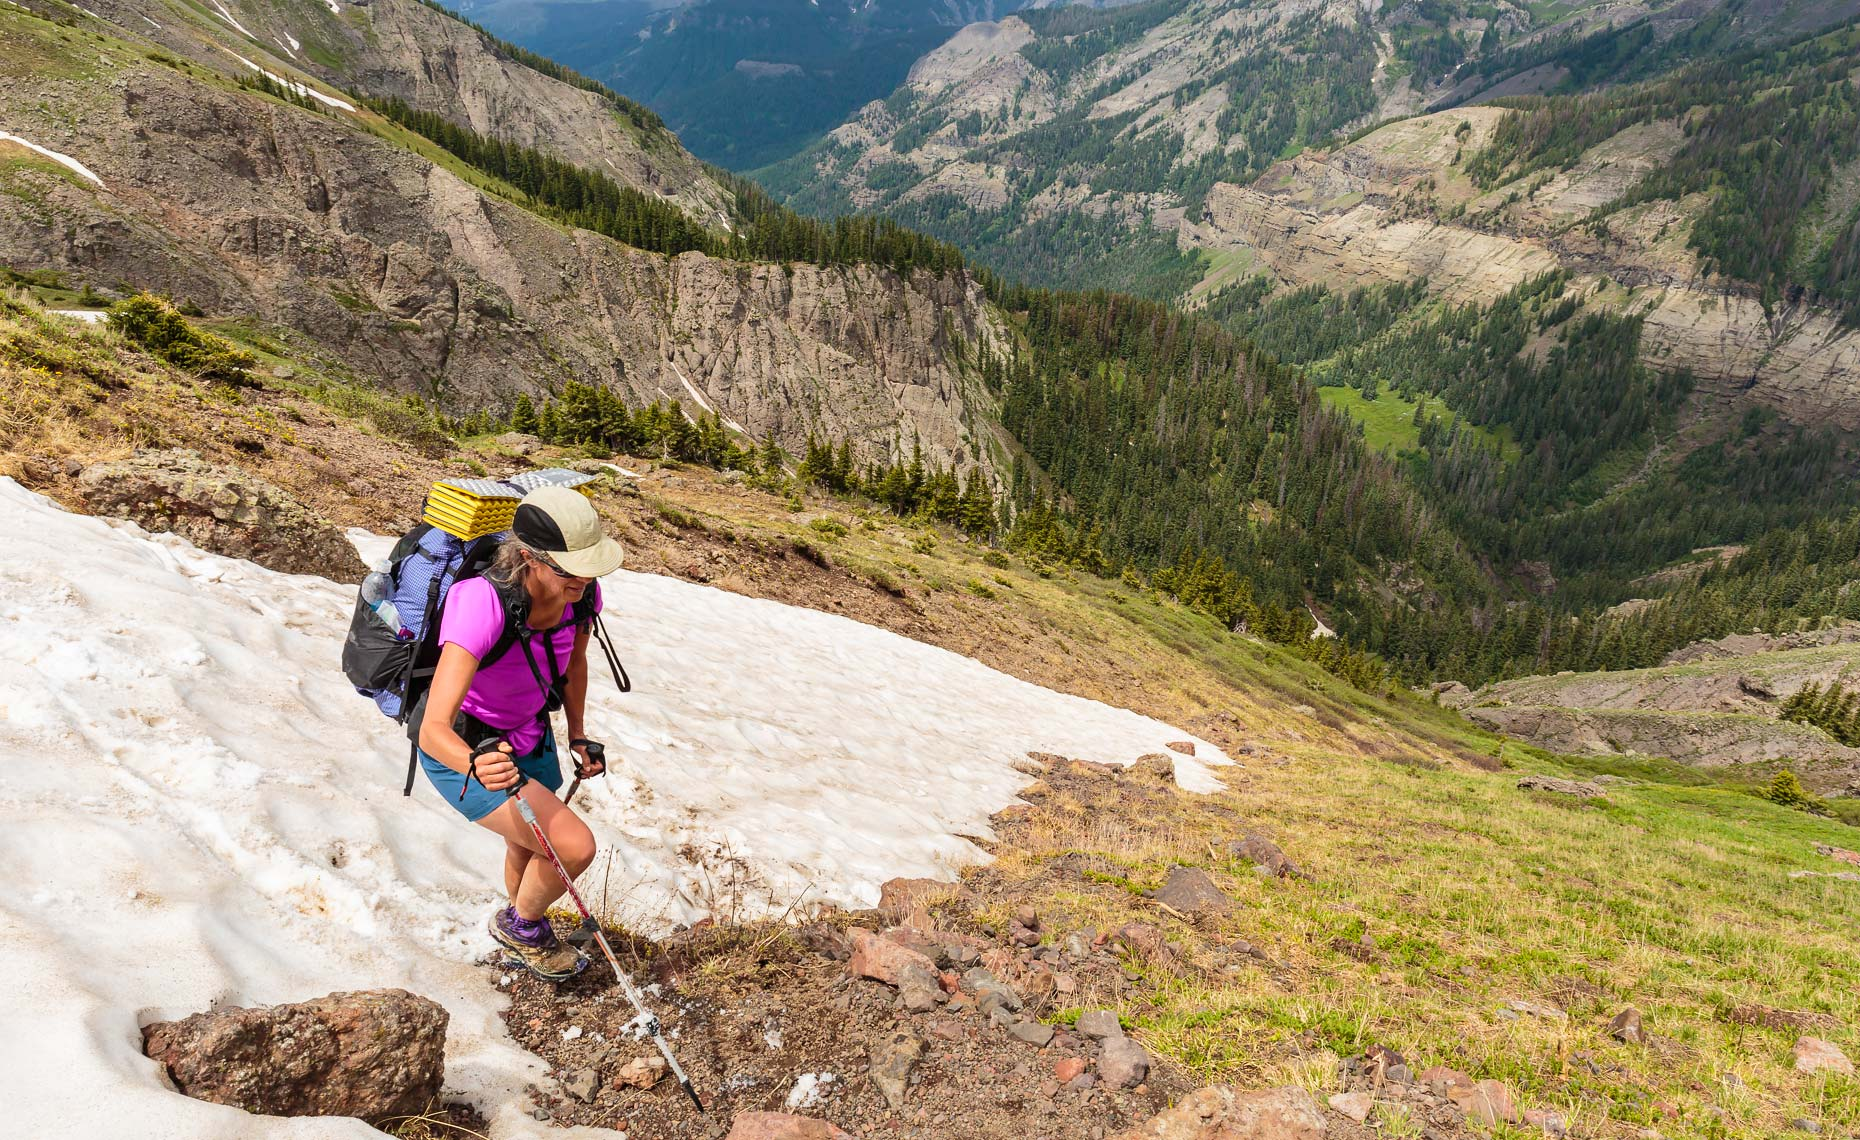 Hiking-Continental-Divide-Trail-Michael-DeYoung-MD150707VCO_HB106